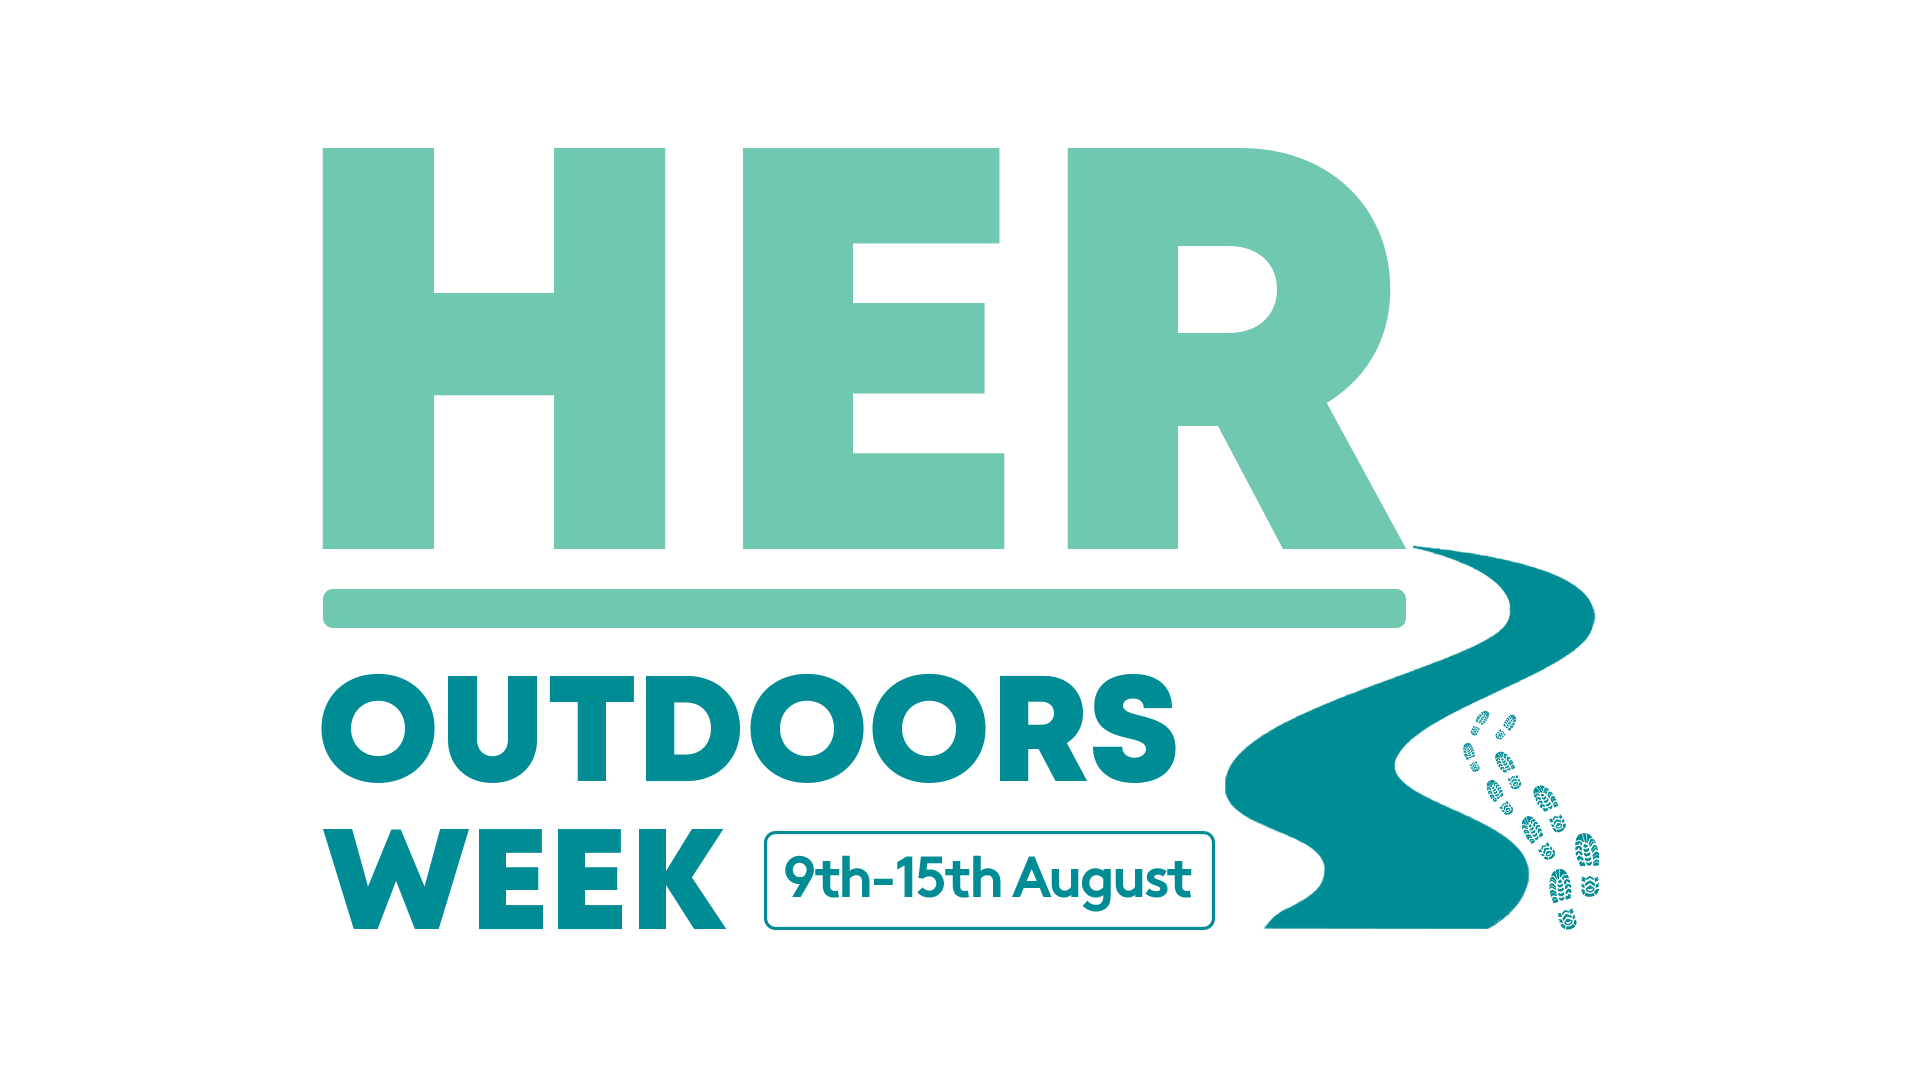 https://www.etbi.ie/wp-content/uploads/2021/08/HER-Outdoors-Week-Logo-with-Date-2.png